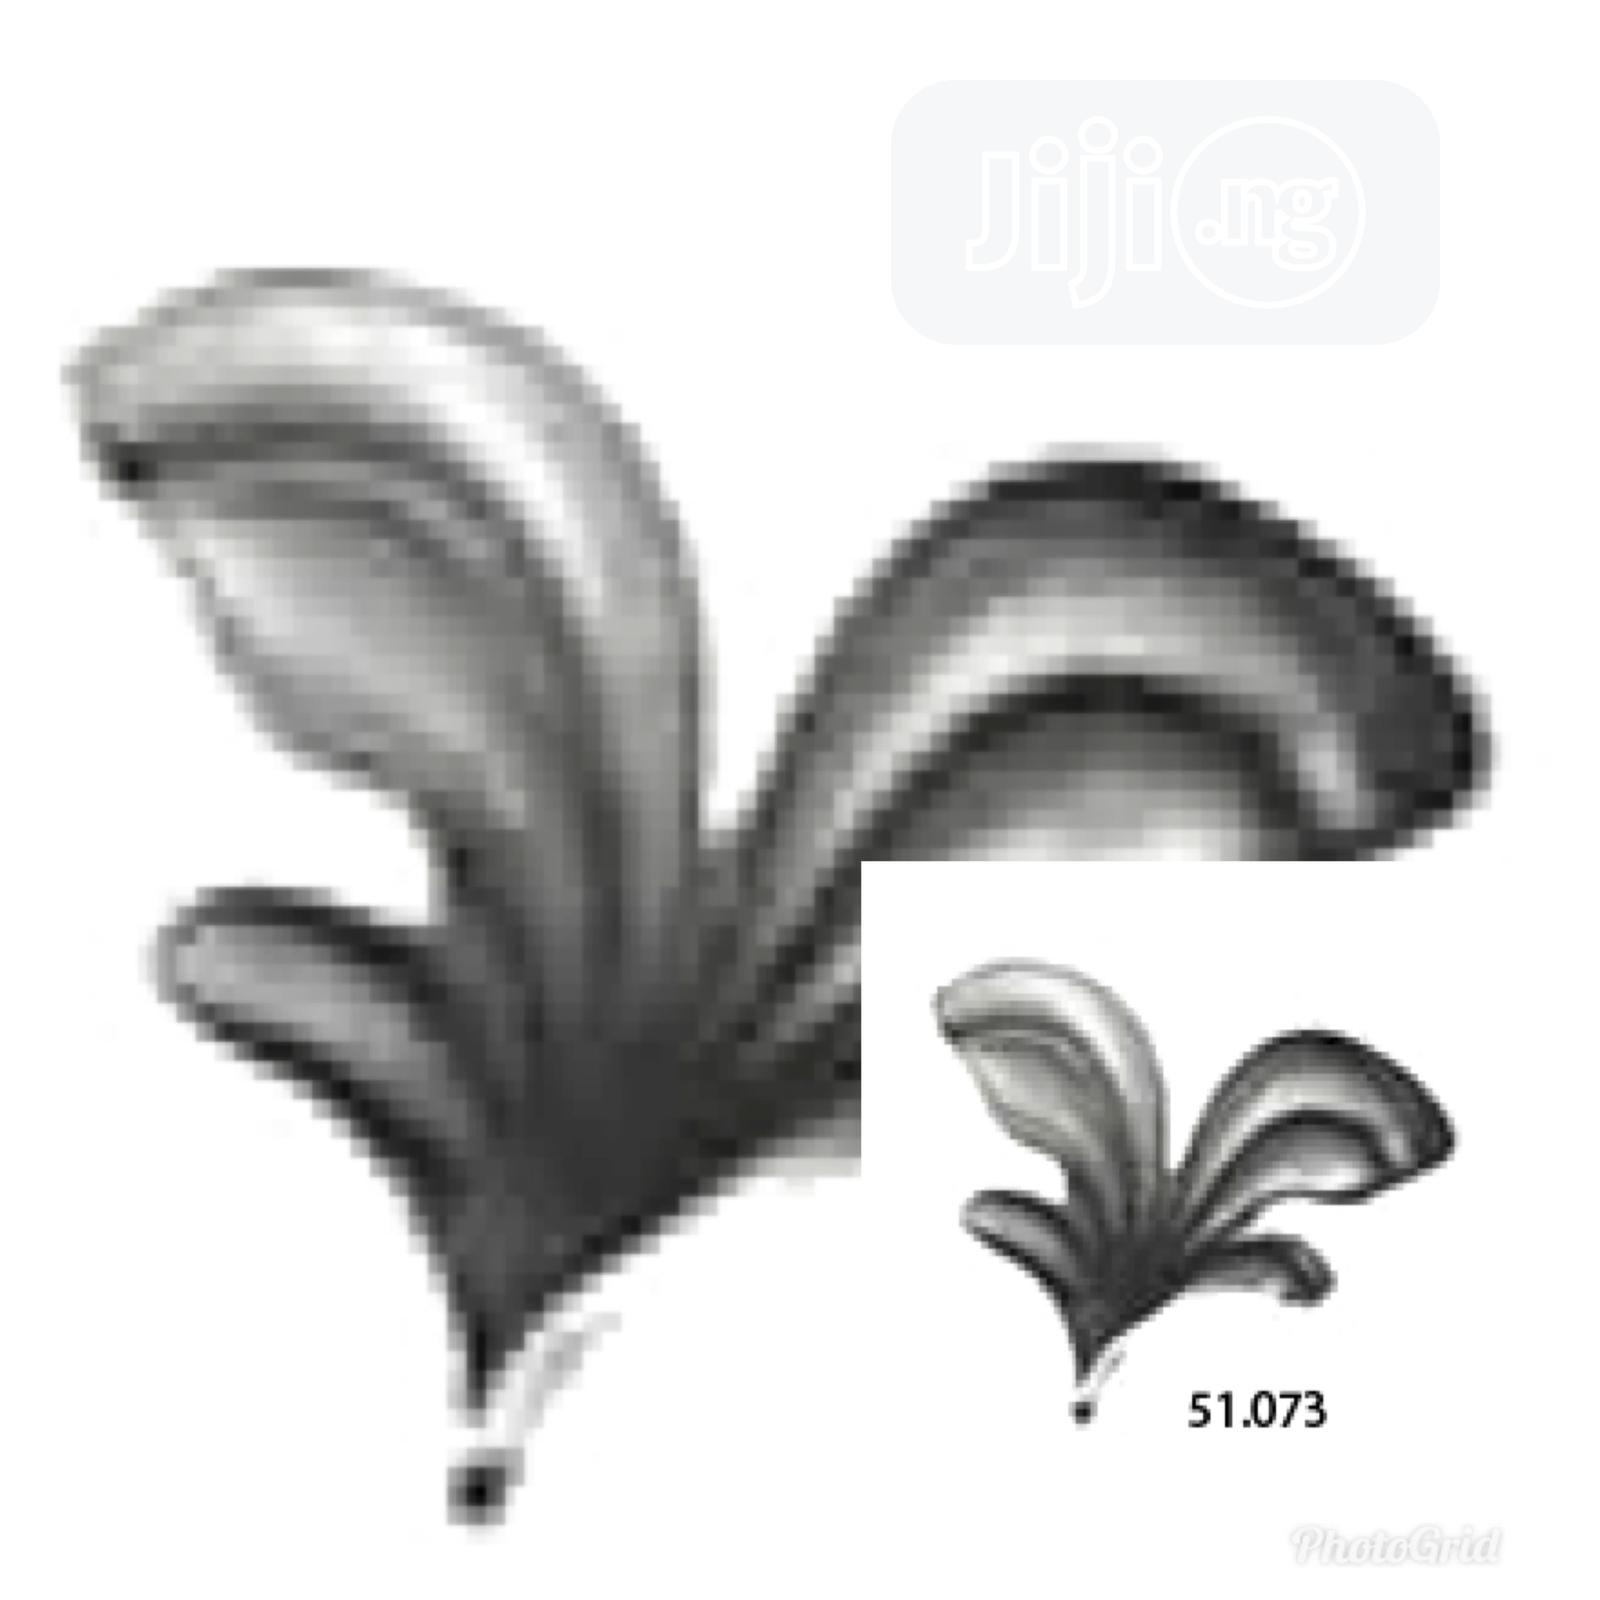 Wrought Iron Designs And Accessories | Arts & Crafts for sale in Amuwo-Odofin, Lagos State, Nigeria